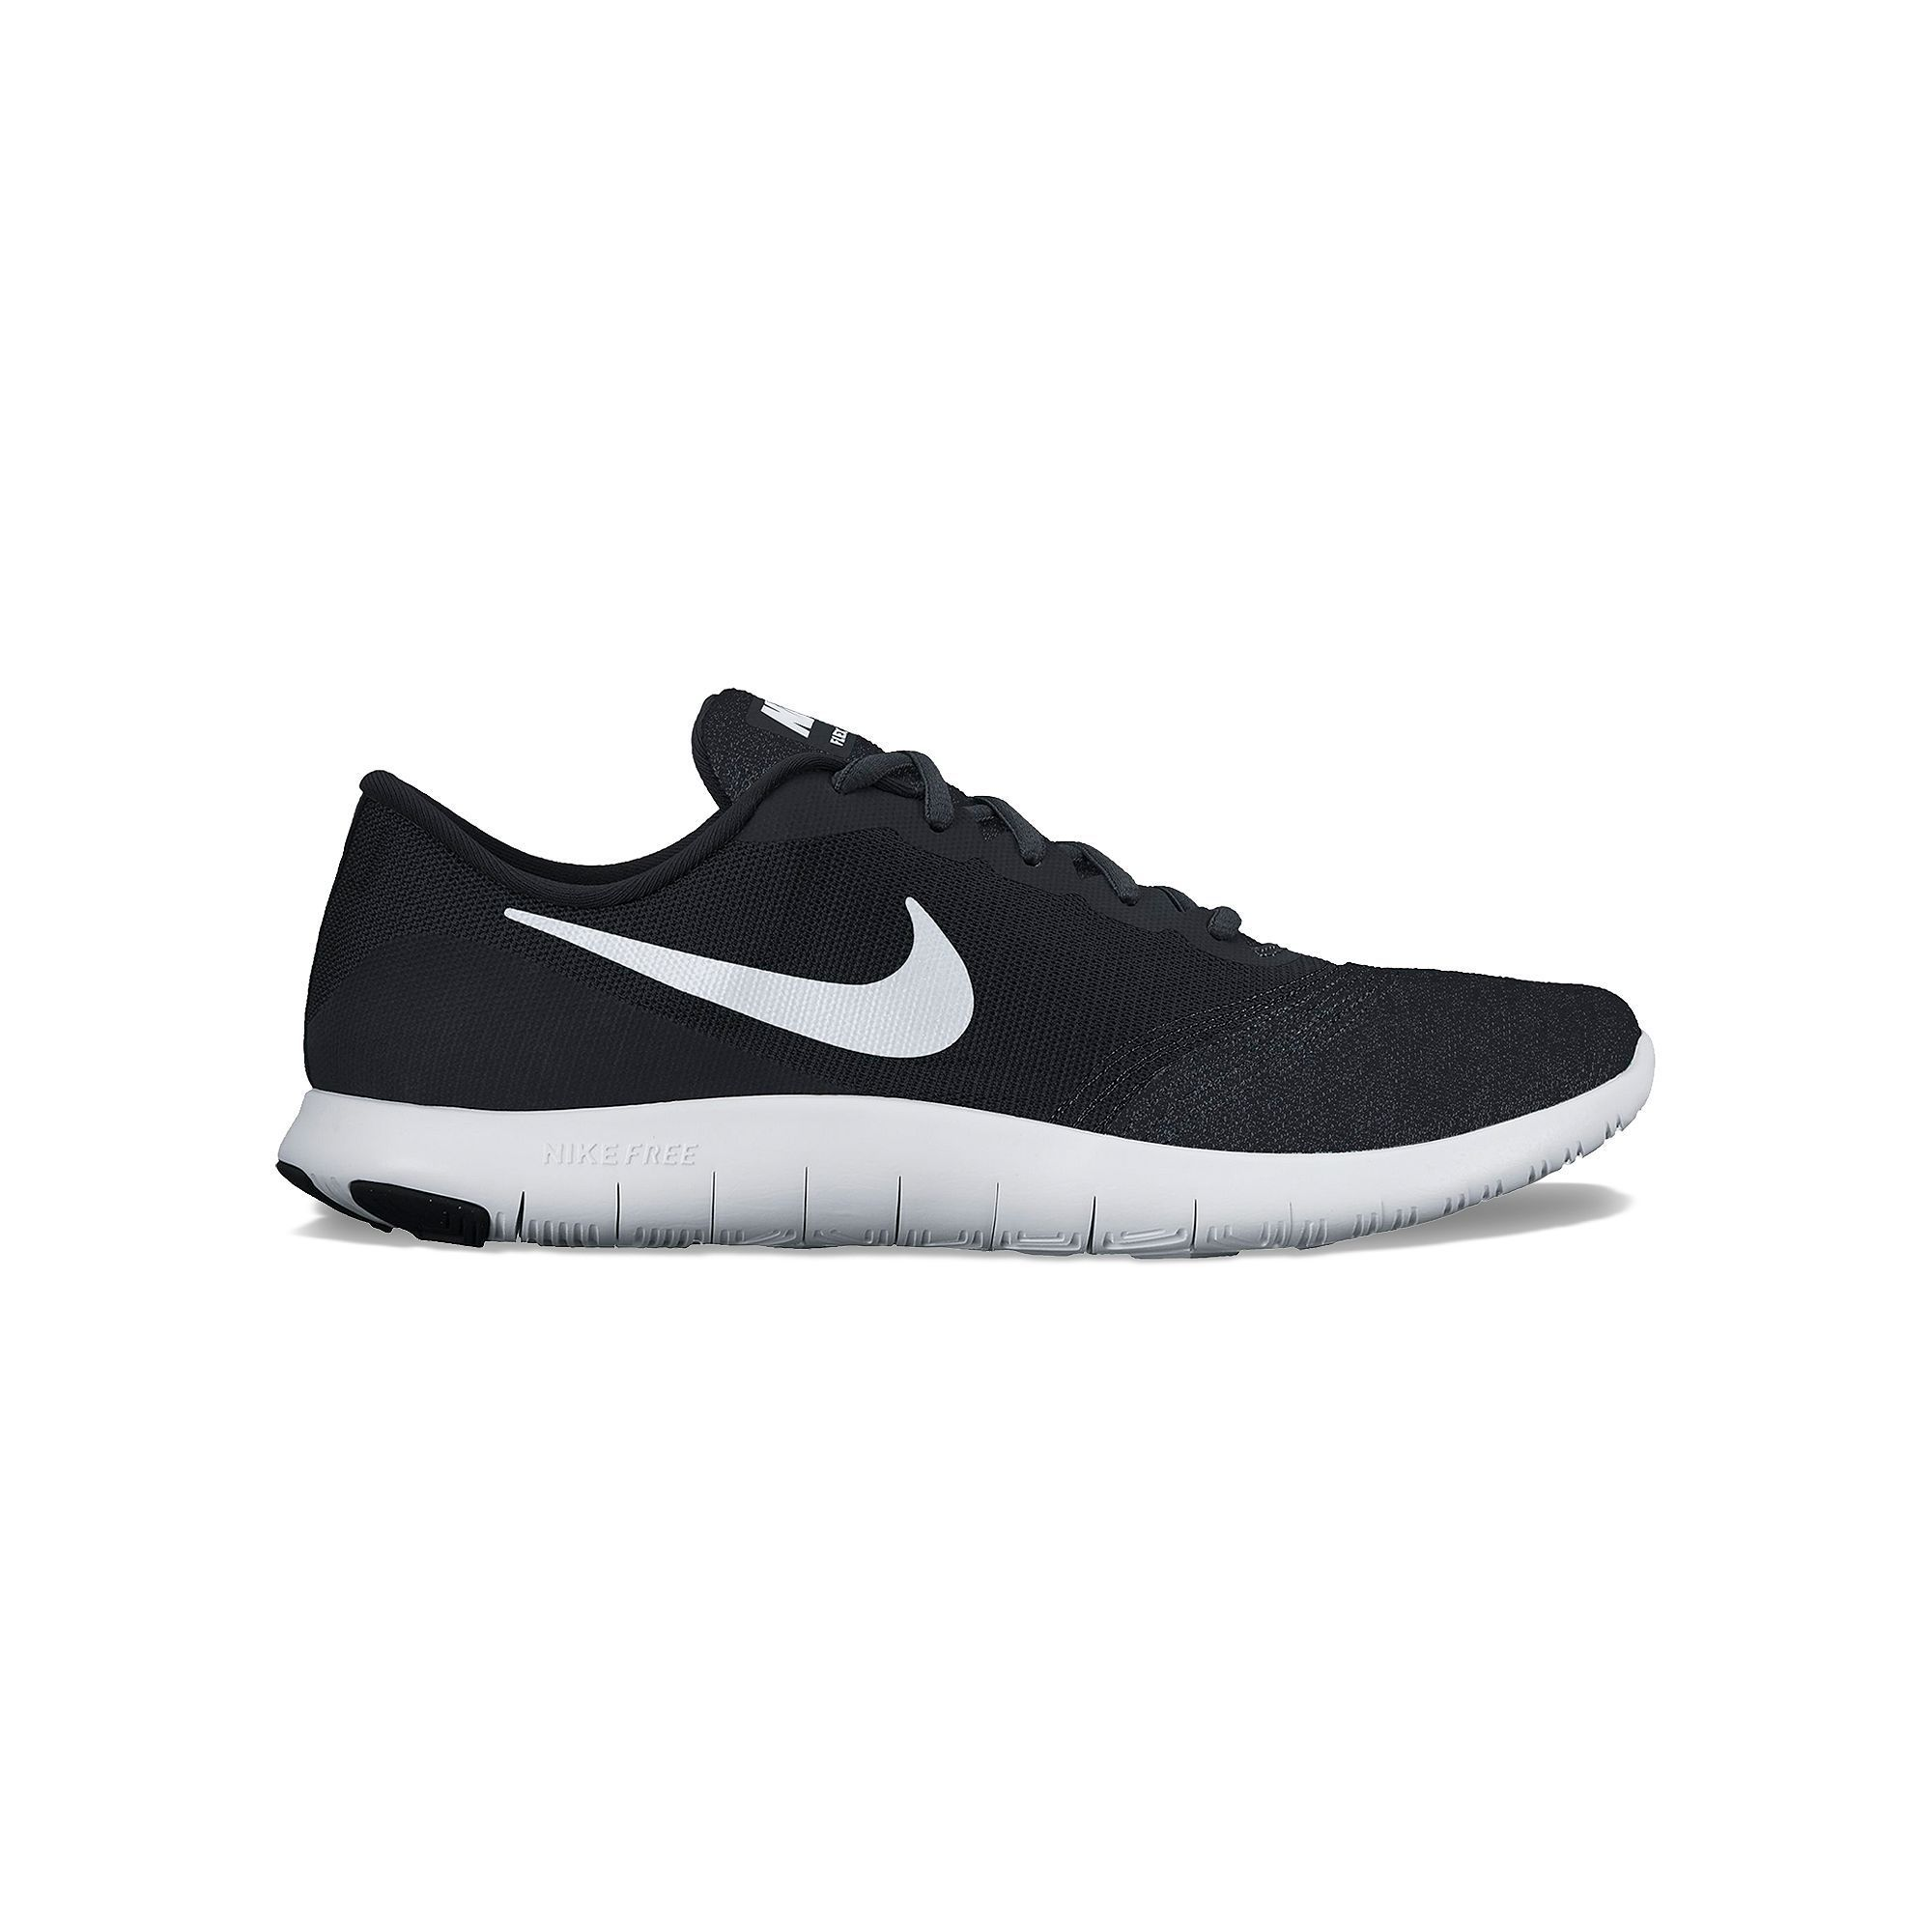 Nike Flex Contact Women s Running Shoes  c5dbf088ef